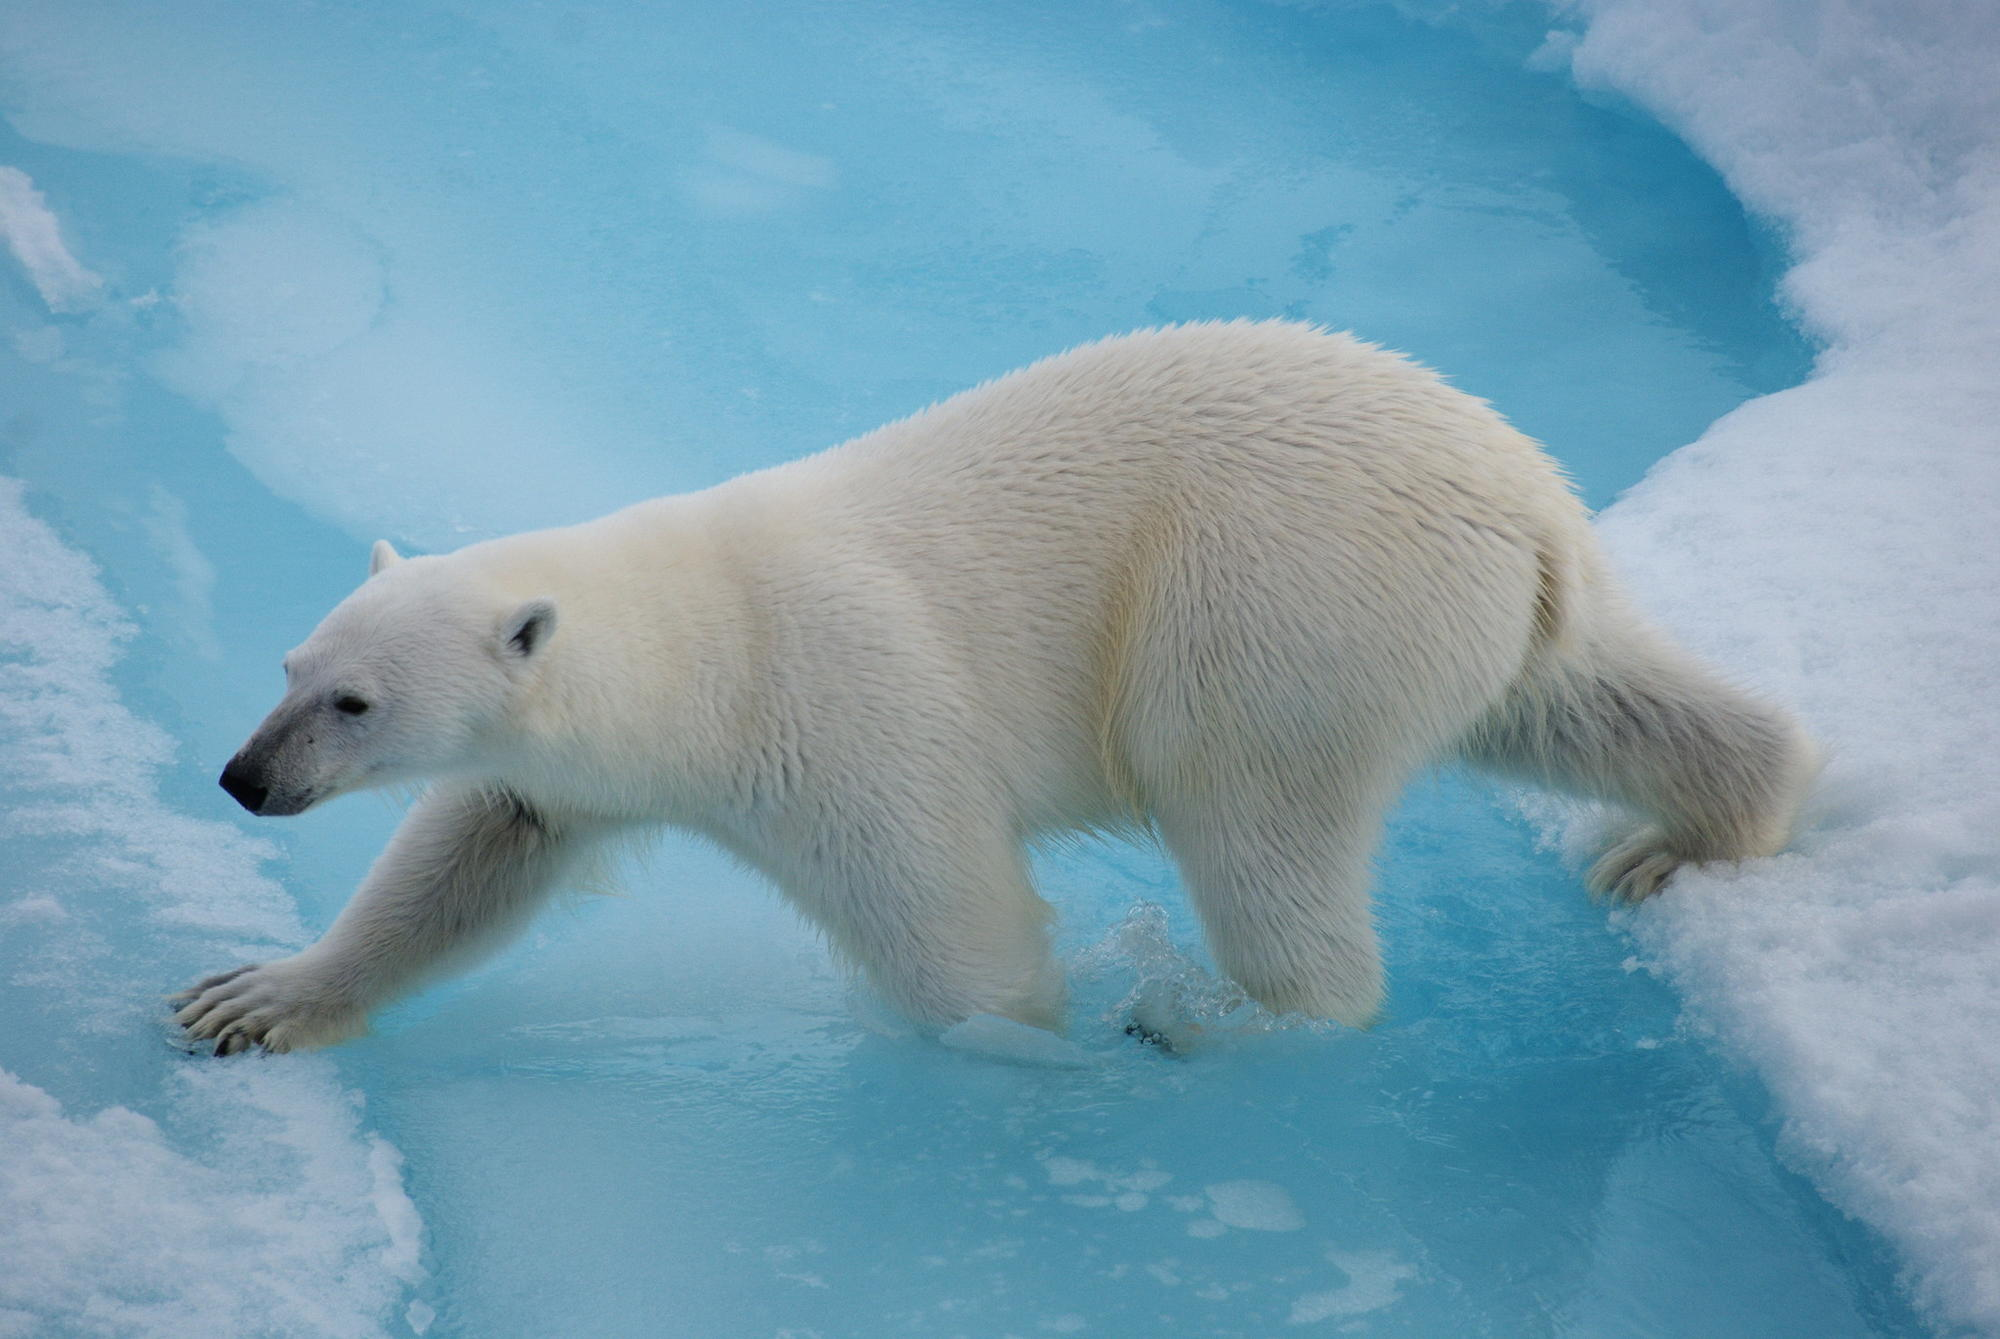 Polar bears in the Russian Arctic